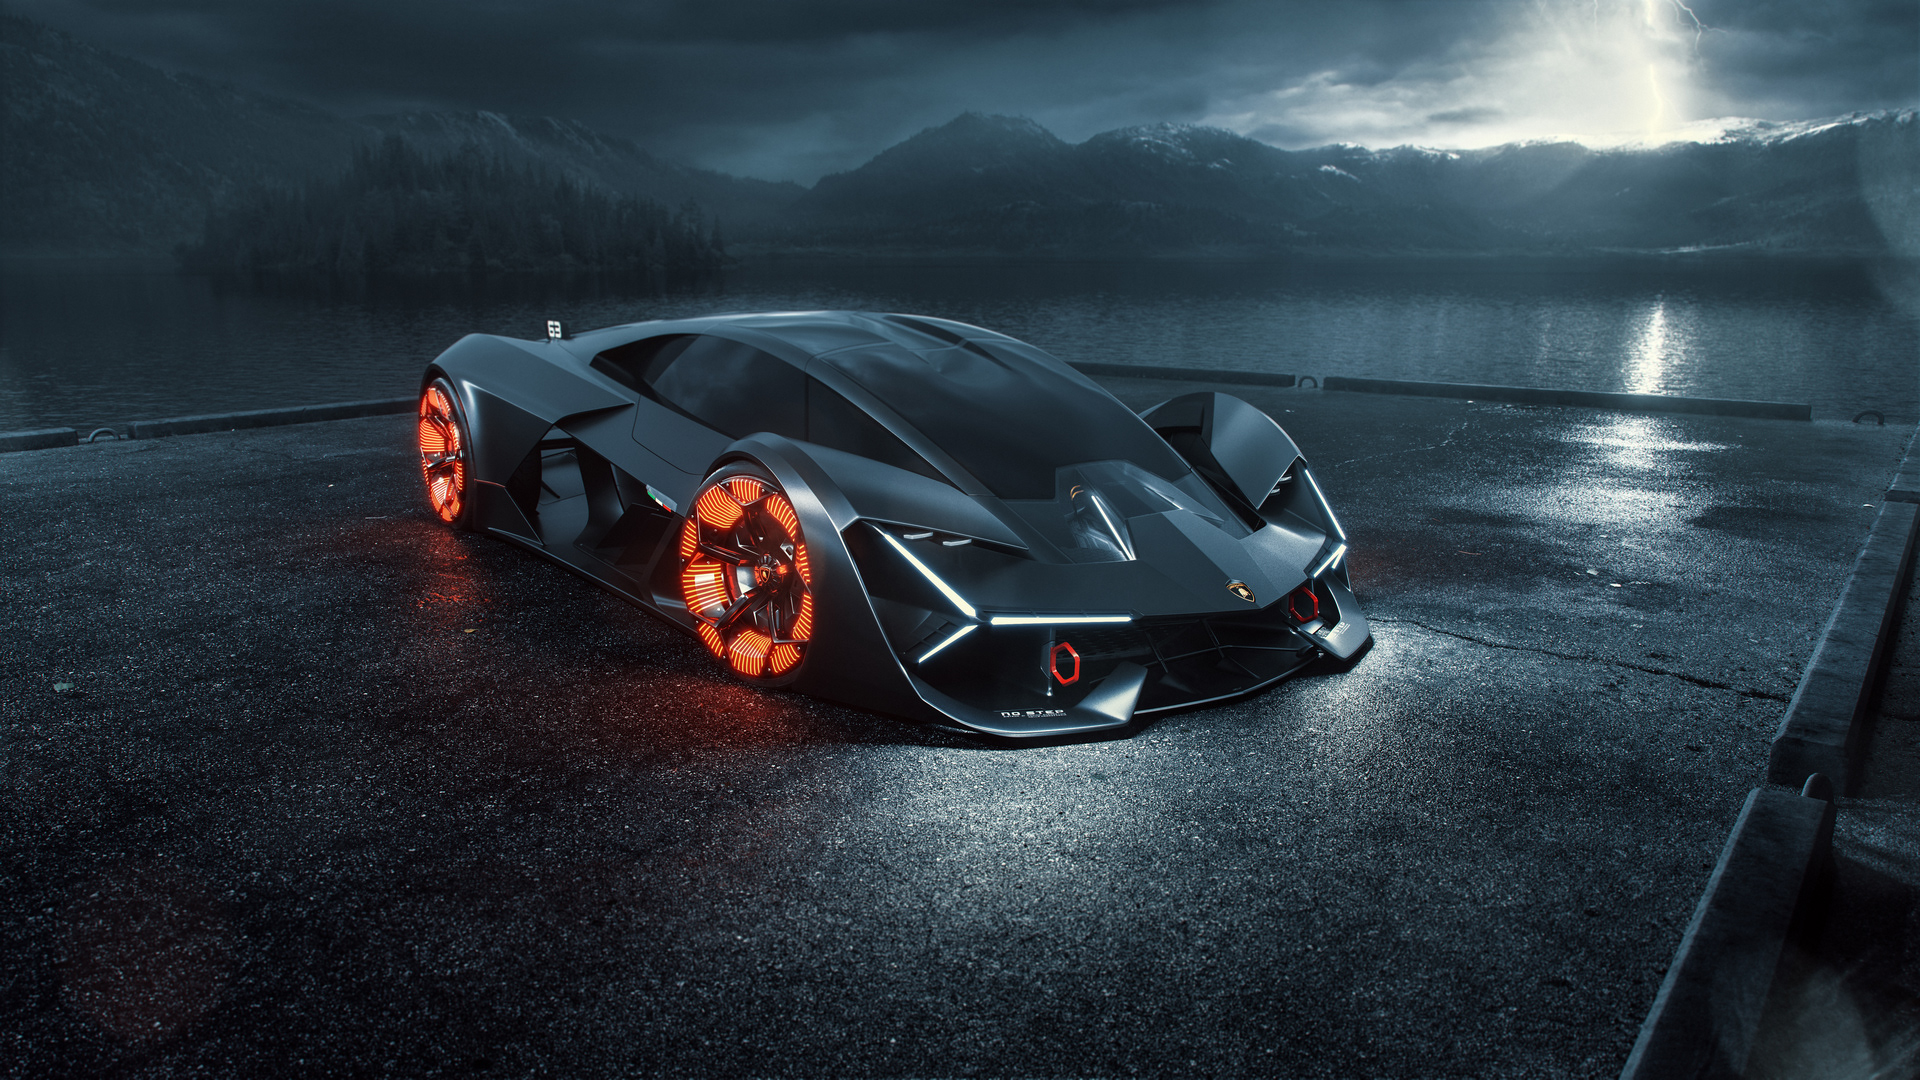 2019 Lamborghini Terzo Millennio Digital Art Hd Cars 4k Wallpapers Images Backgrounds Photos And Pictures